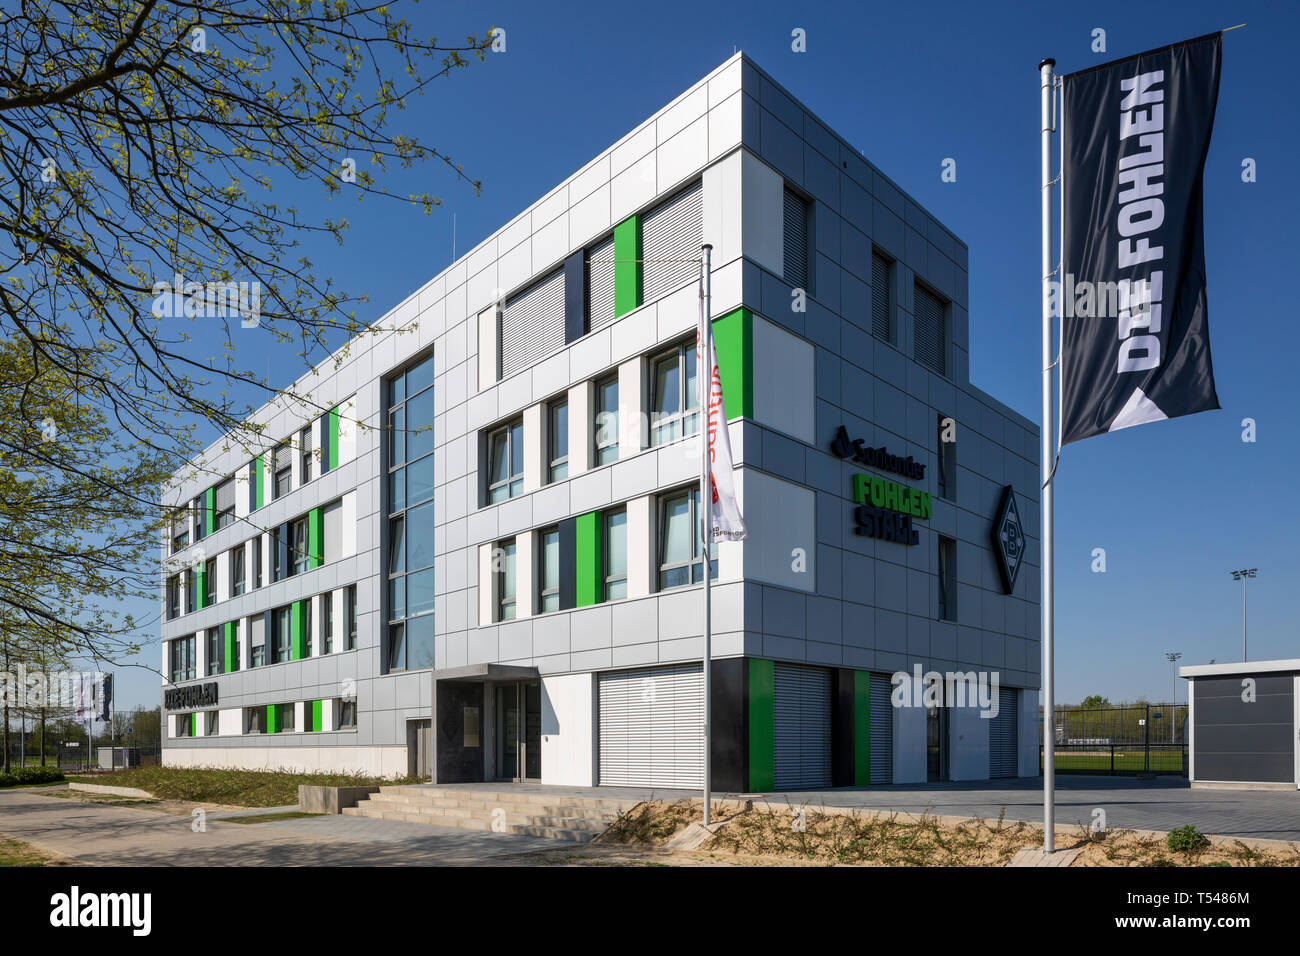 sports, football, Bundesliga, 2018/2019, Borussia Moenchengladbach, at the Stadium Borussia Park the Santander FohlenStall was officially opened in March 2019, boarding school for young and up-and-coming players, football academy, junior football, youth work, work with young talents, talent pool - Stock Image